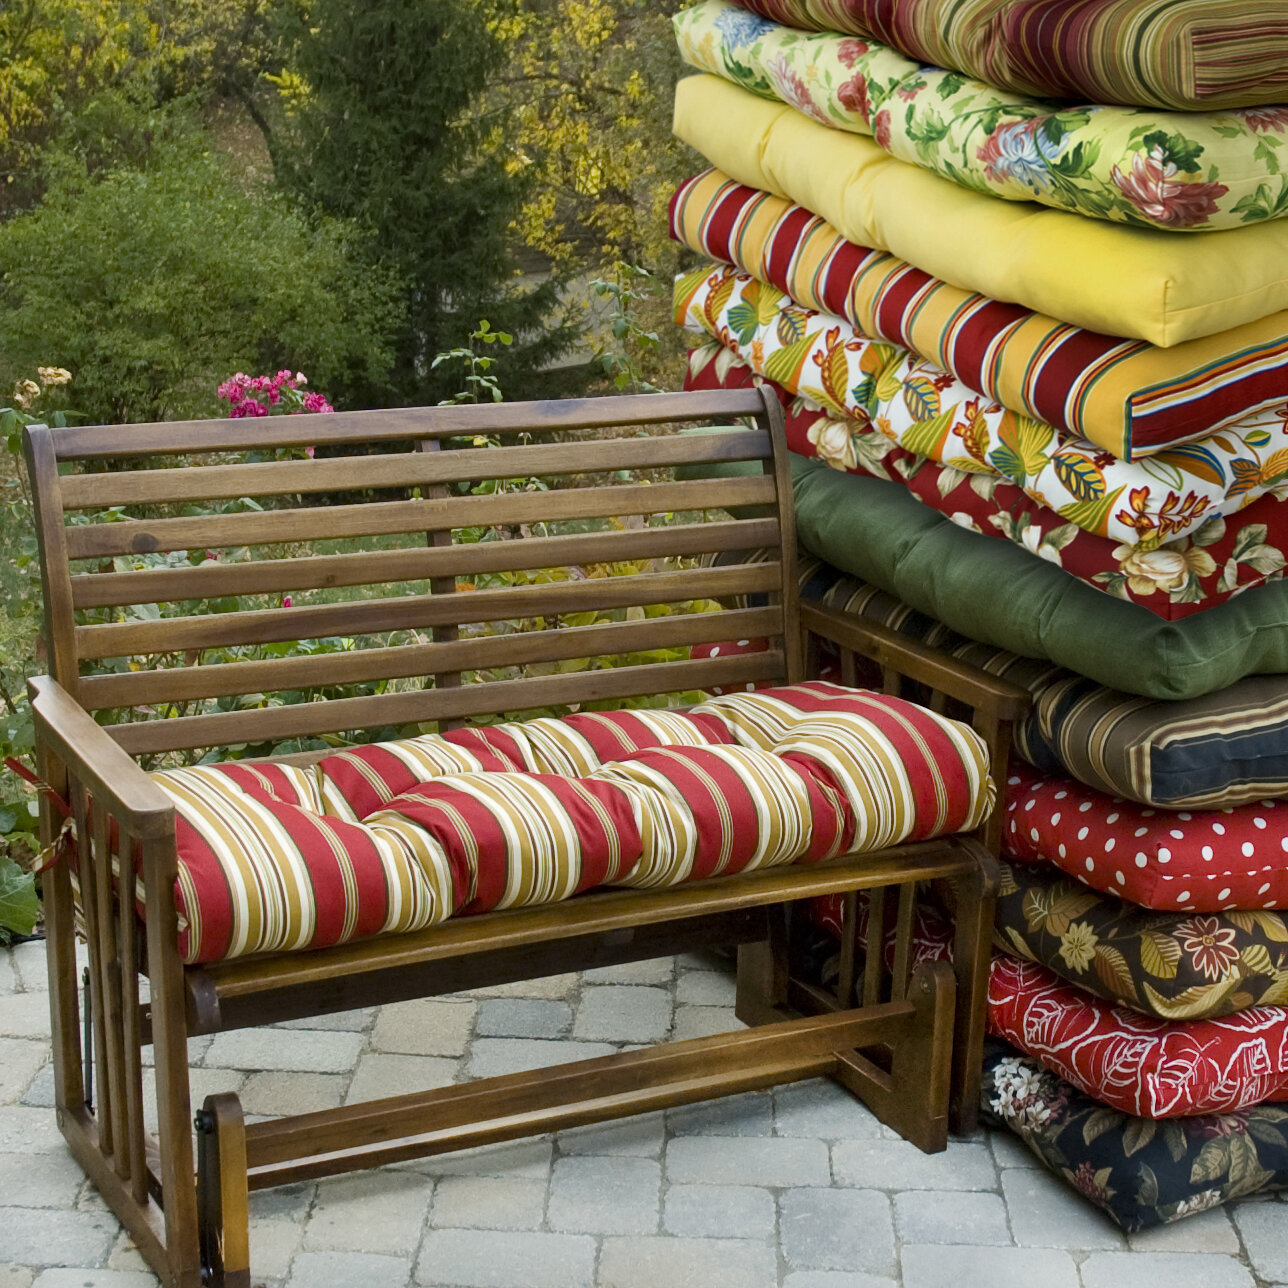 Amazing photo of Details about Greendale Home Fashions Bench Cushion for Outdoor Swing with #997E32 color and 1288x1288 pixels